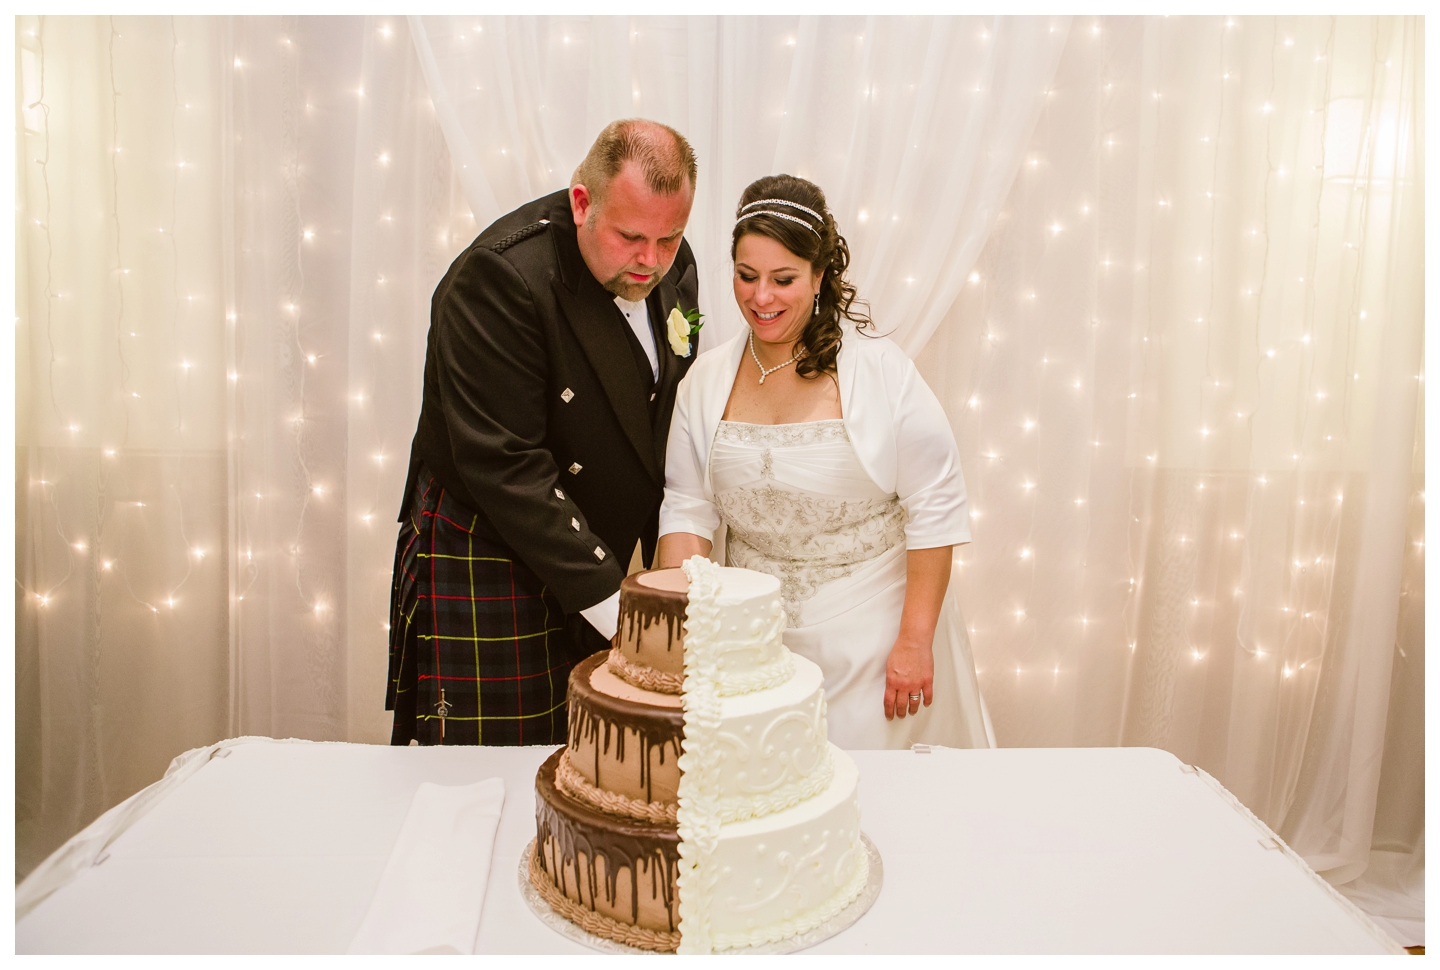 Bride and Groom cutting his and her wedding cake